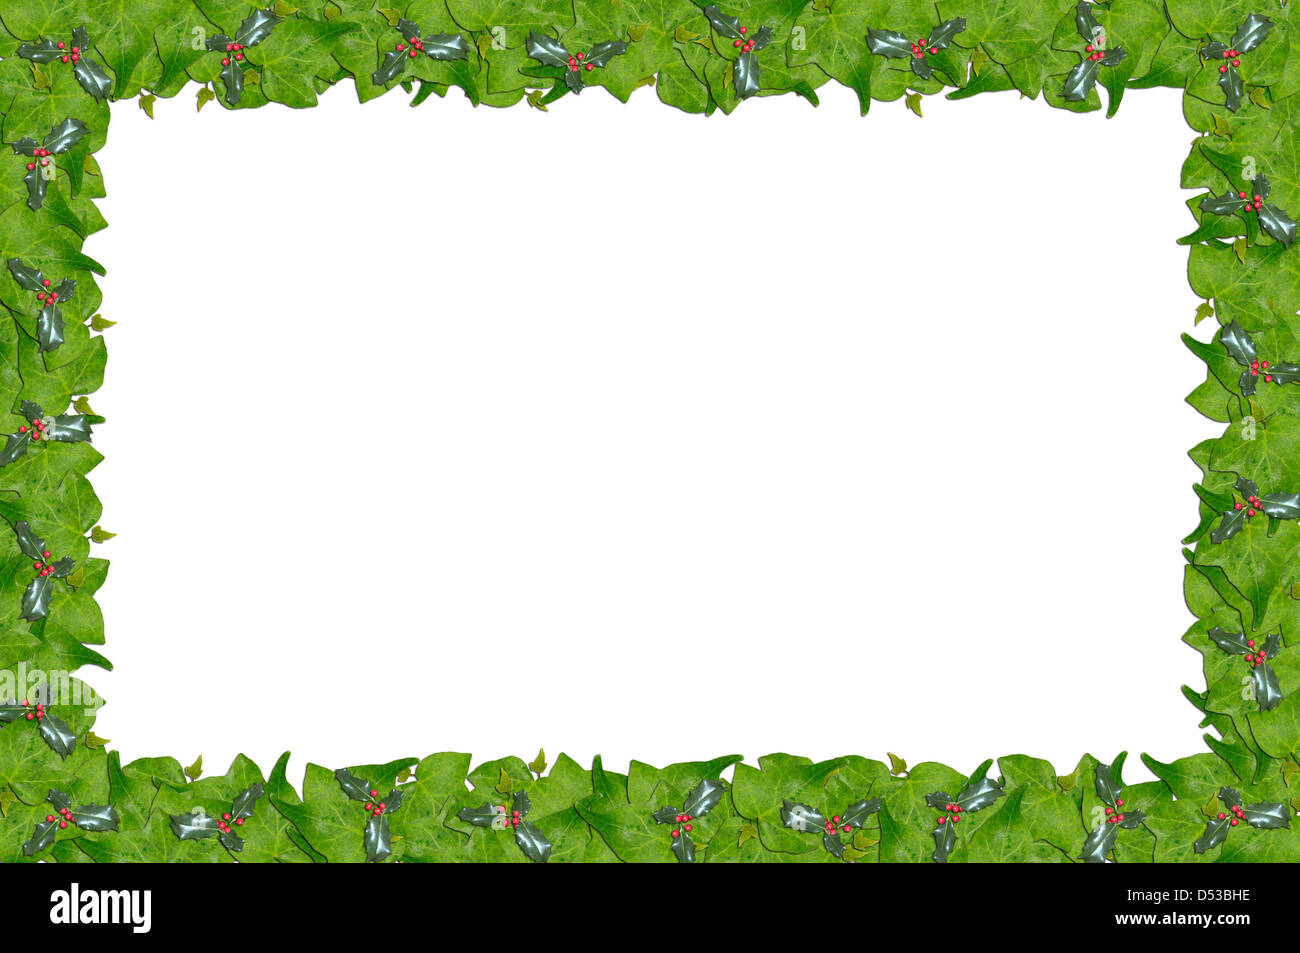 Christmas Page Border.Christmas Holly And Ivy Page Border Stock Photo 54779354